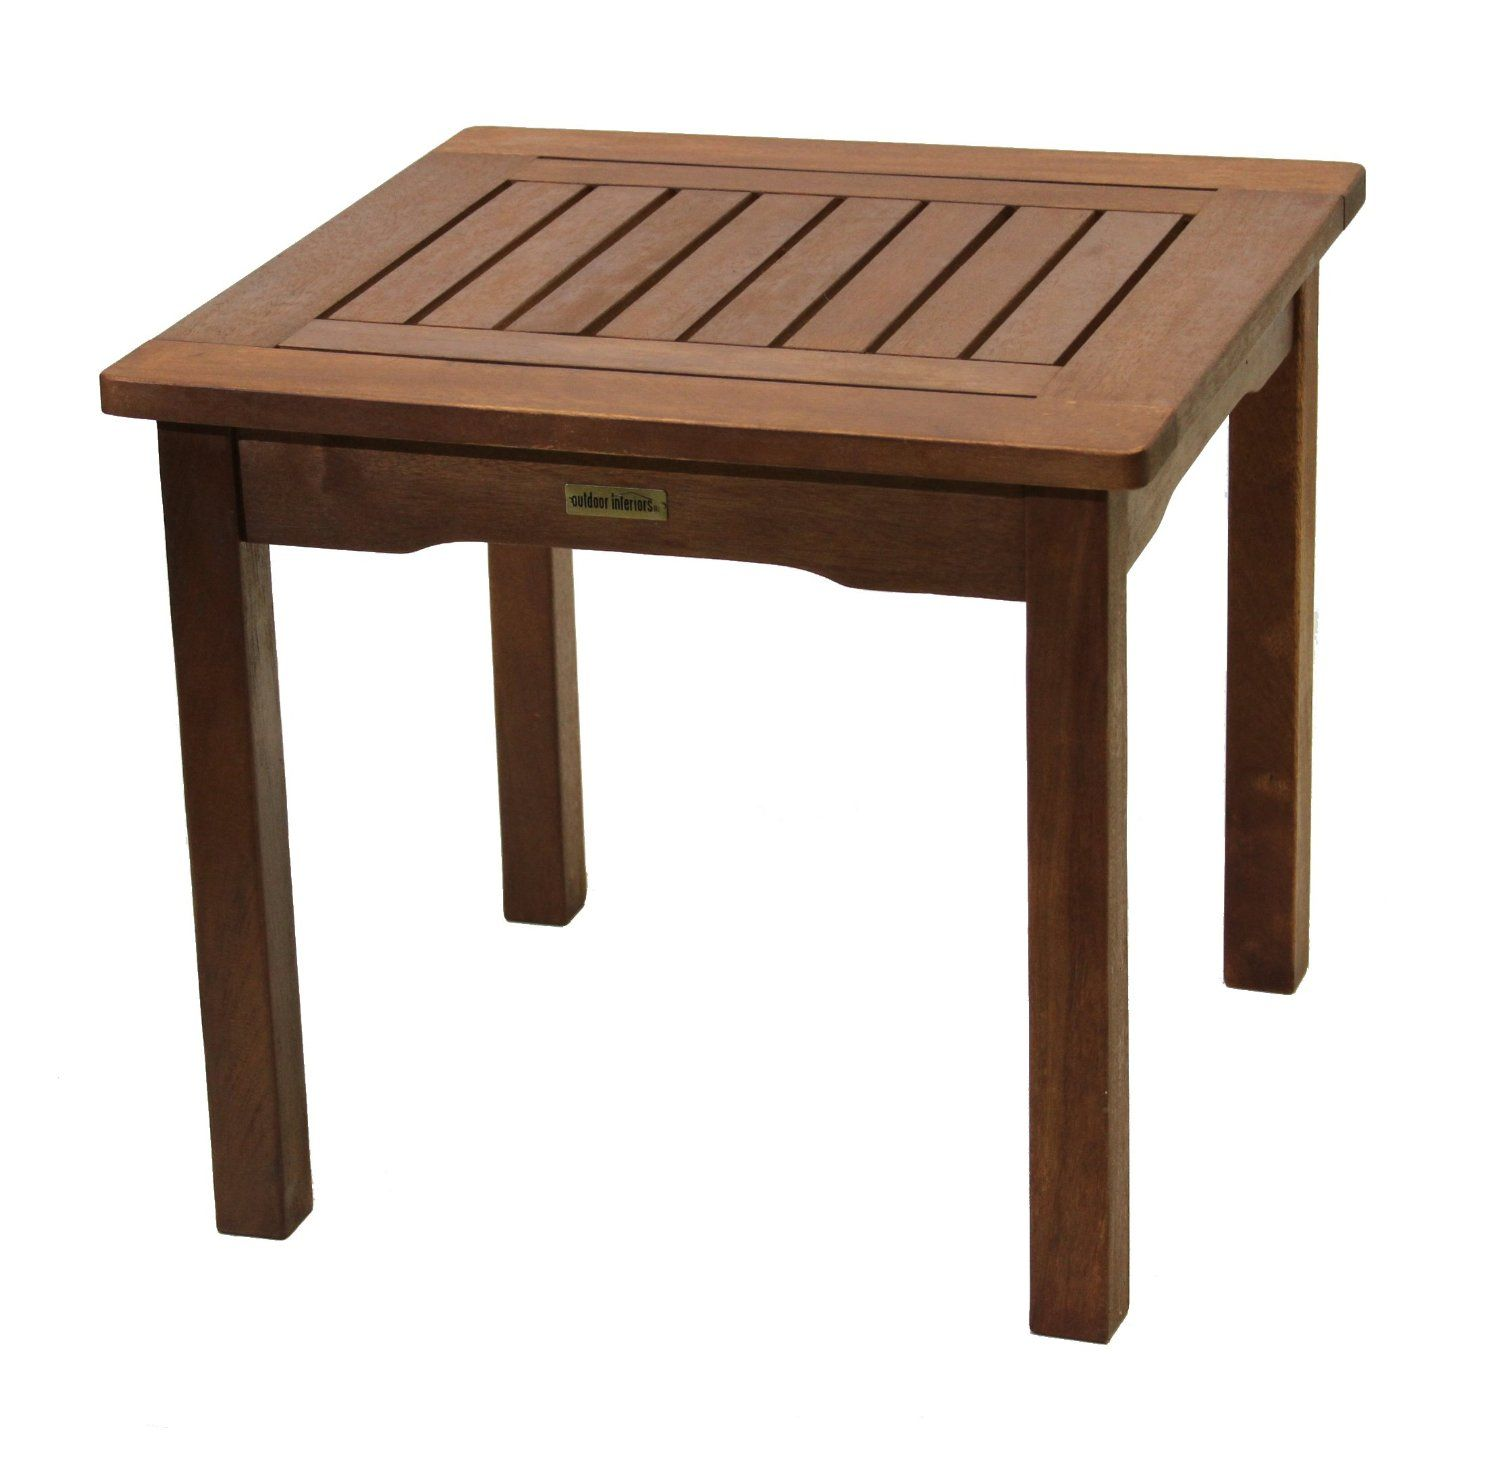 small garden table amazon.com: interior fittings for the outside area 19470 Eucalyptus side table: UNIFNHU terrace side